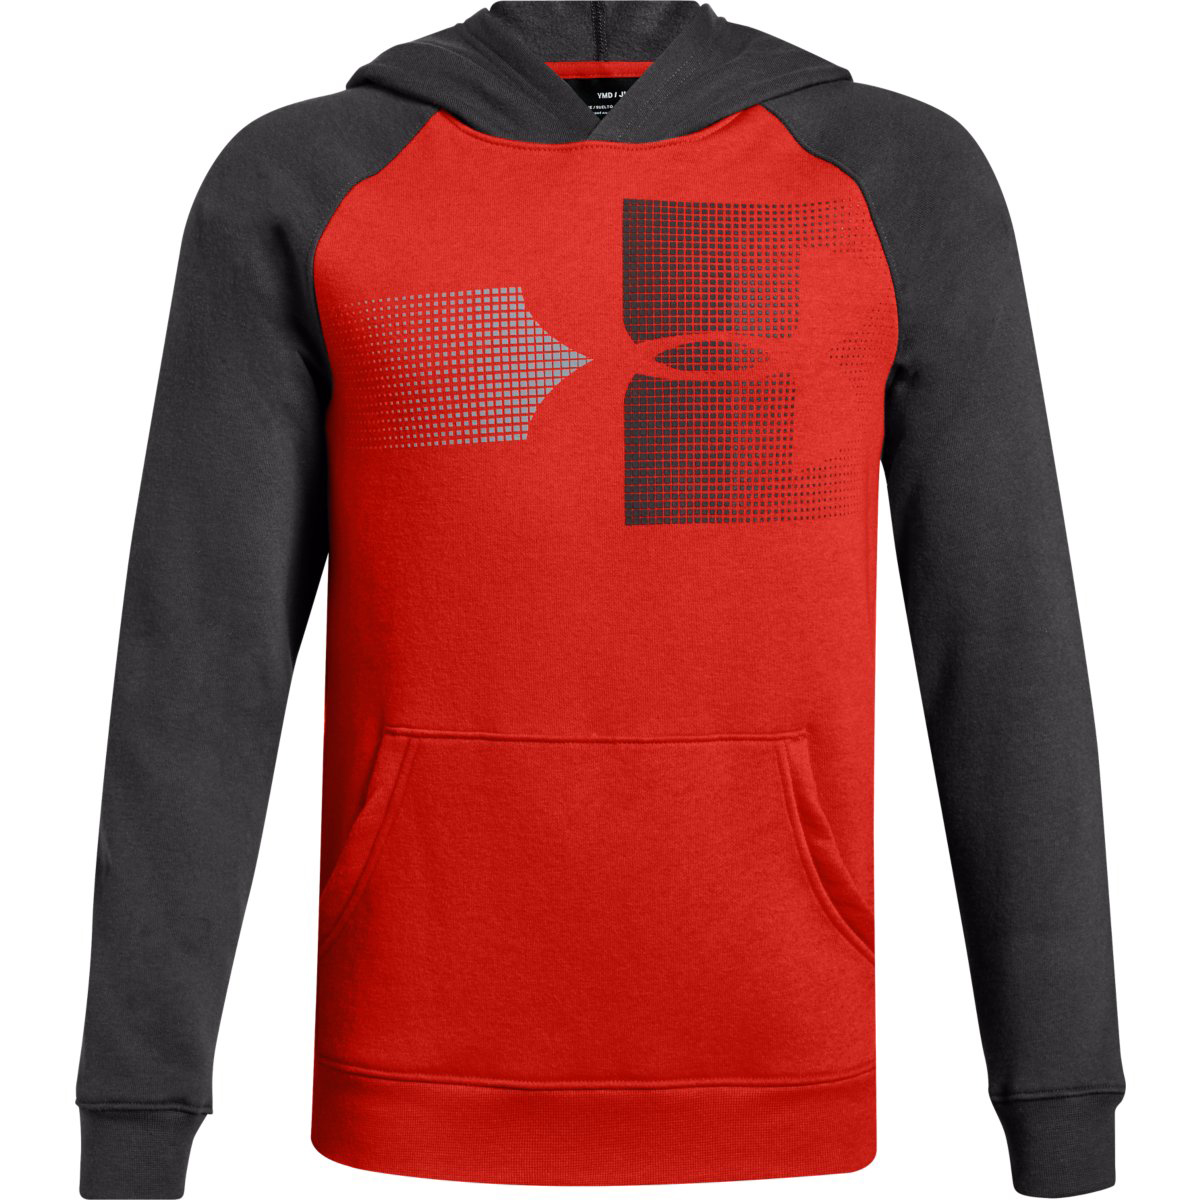 Under Armour Big Boys' Ua Rival Logo Pullover Hoodie - Red, S